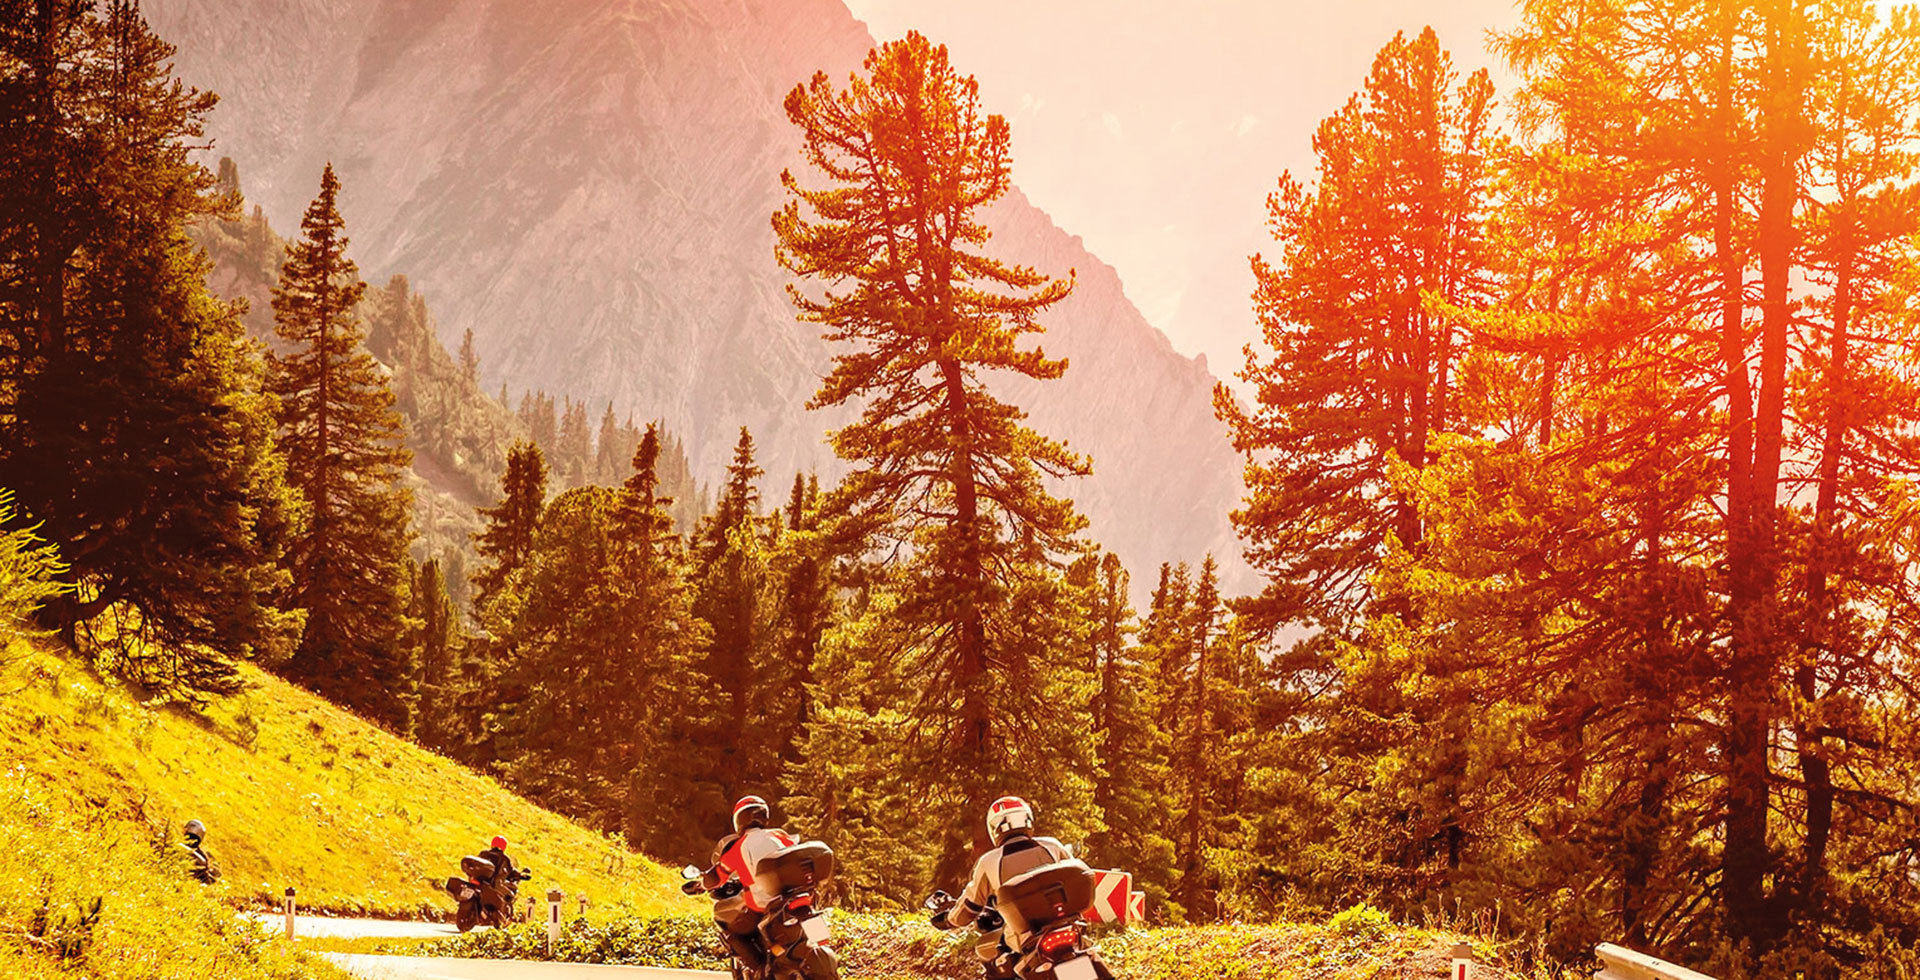 Motor-bike tour in the Dolomites